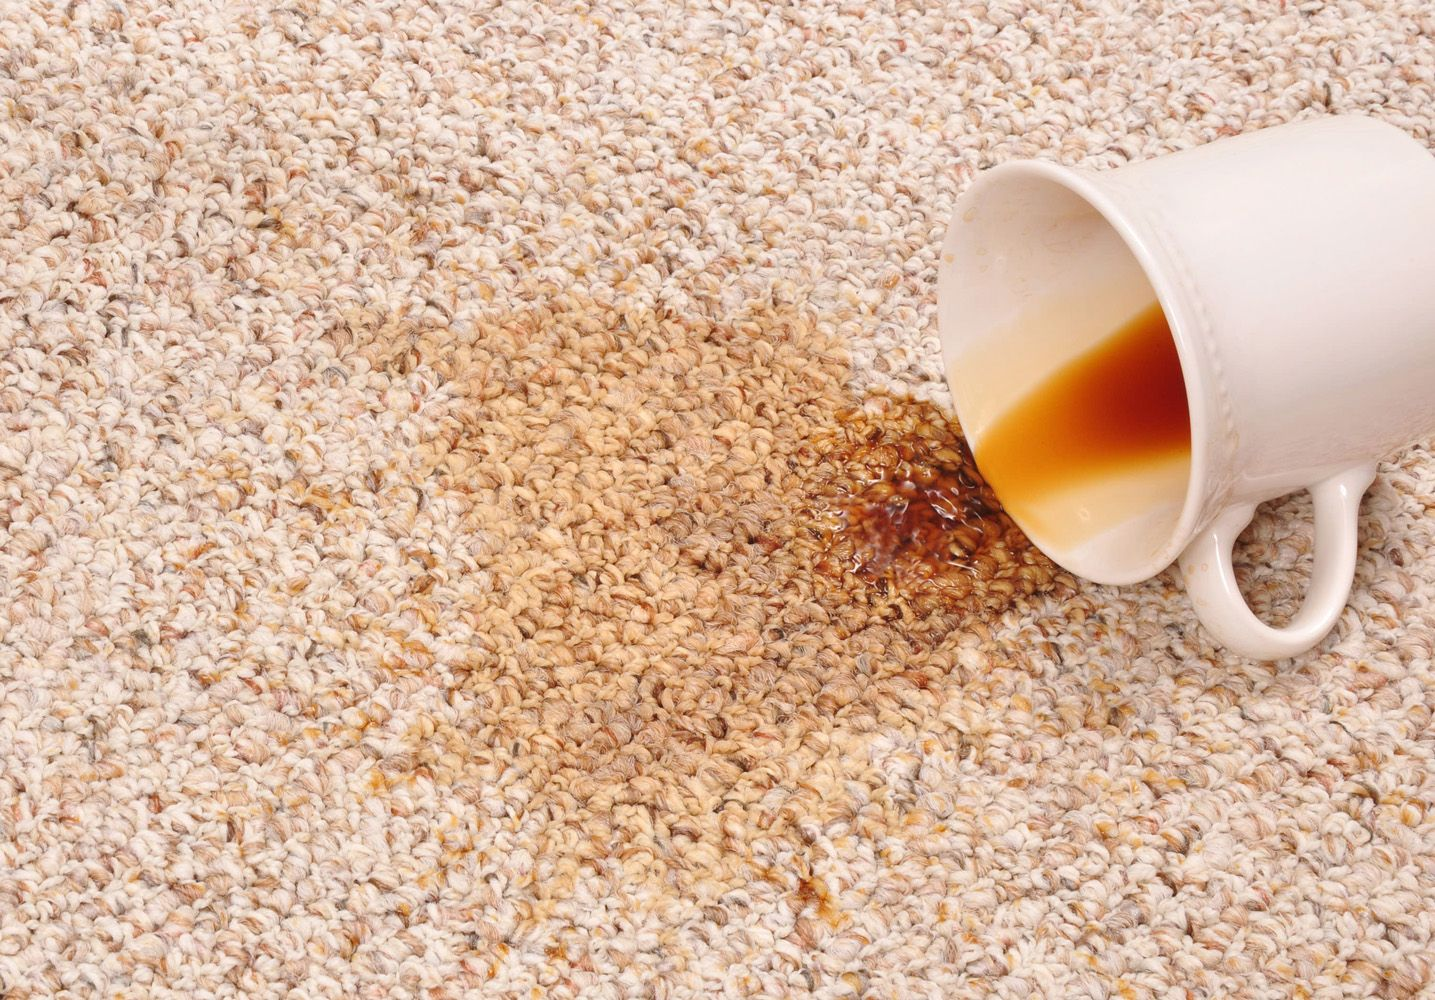 How To Clean Carpet Stains Coffee Tea Spills Fresh Spilled Coffee Or Tea On Carpet Shoul Cleaning Carpet Stains Natural Carpet Cleaning How To Clean Carpet